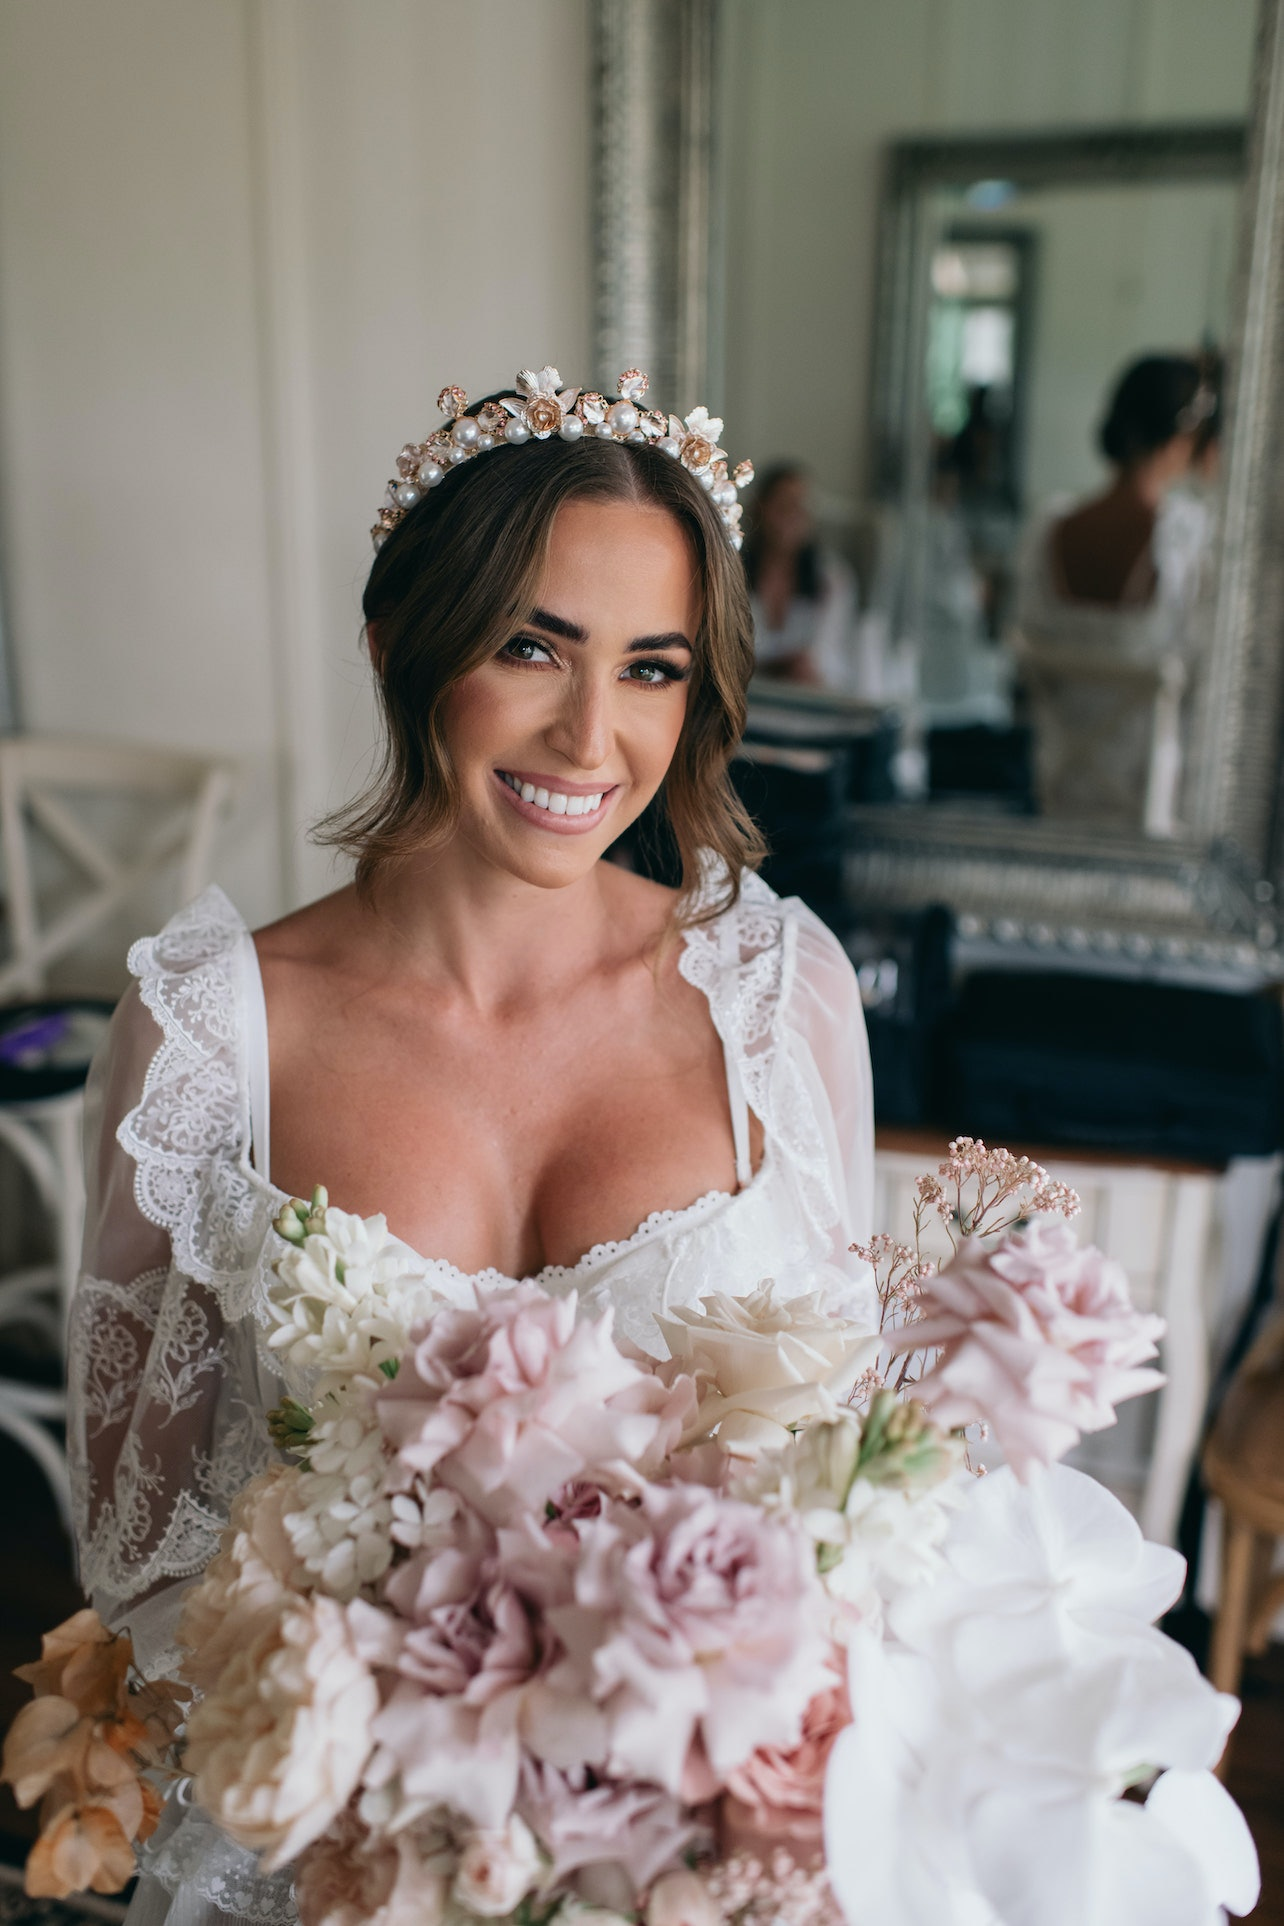 Bride getting ready holding flowers